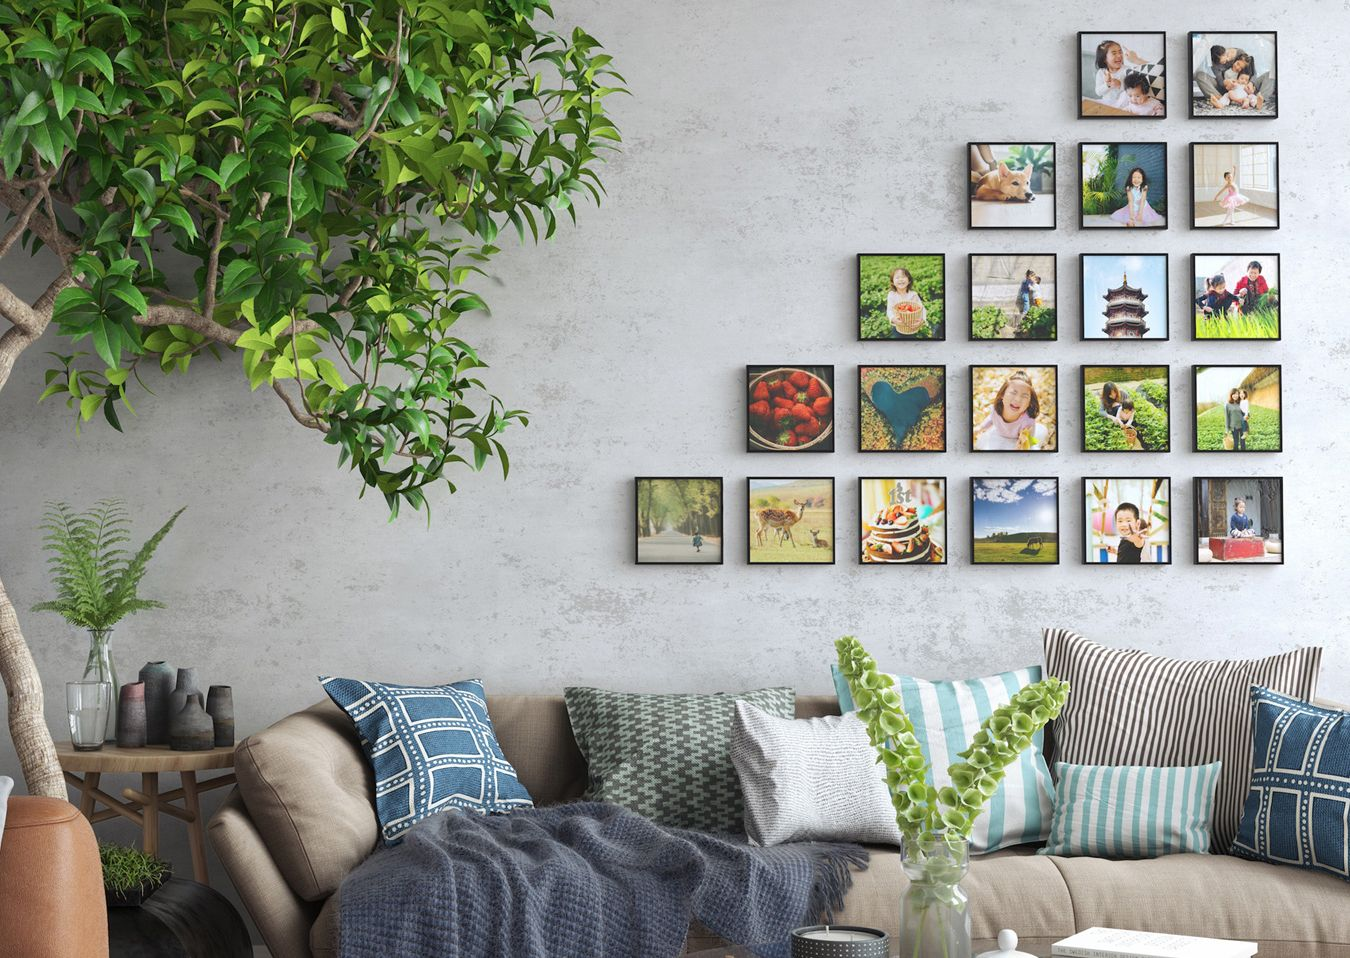 Mixtiles Are Beautiful 8 X8 Photo Tiles That Stick And